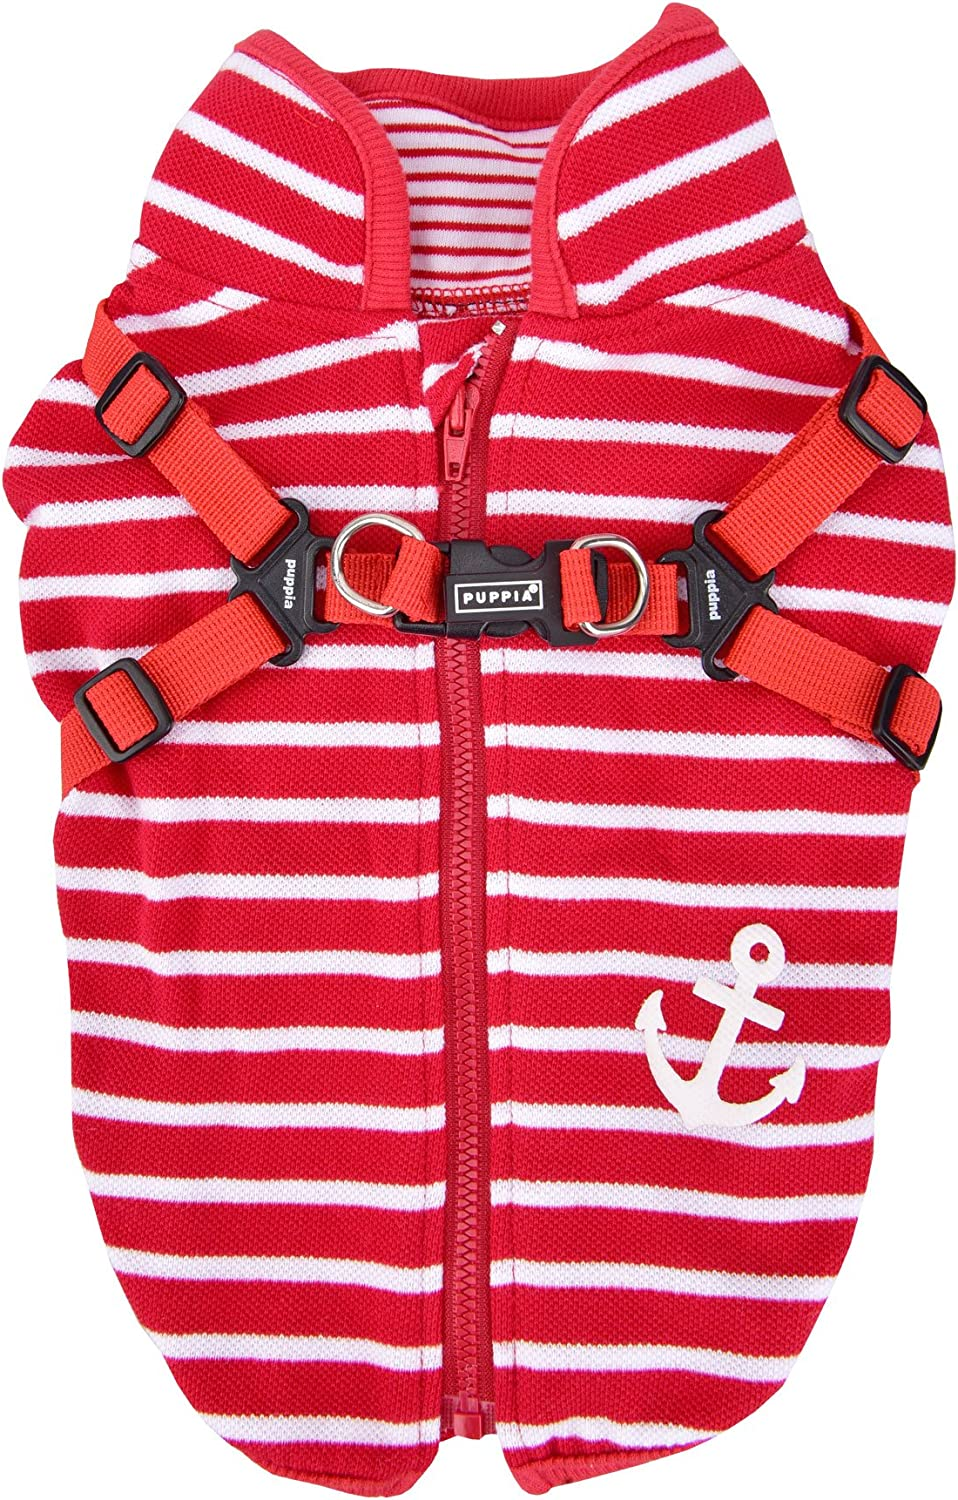 2aa83198821b Clancy Puppia Vest PASAVT1611RDS Small Harness, Integrated with ...